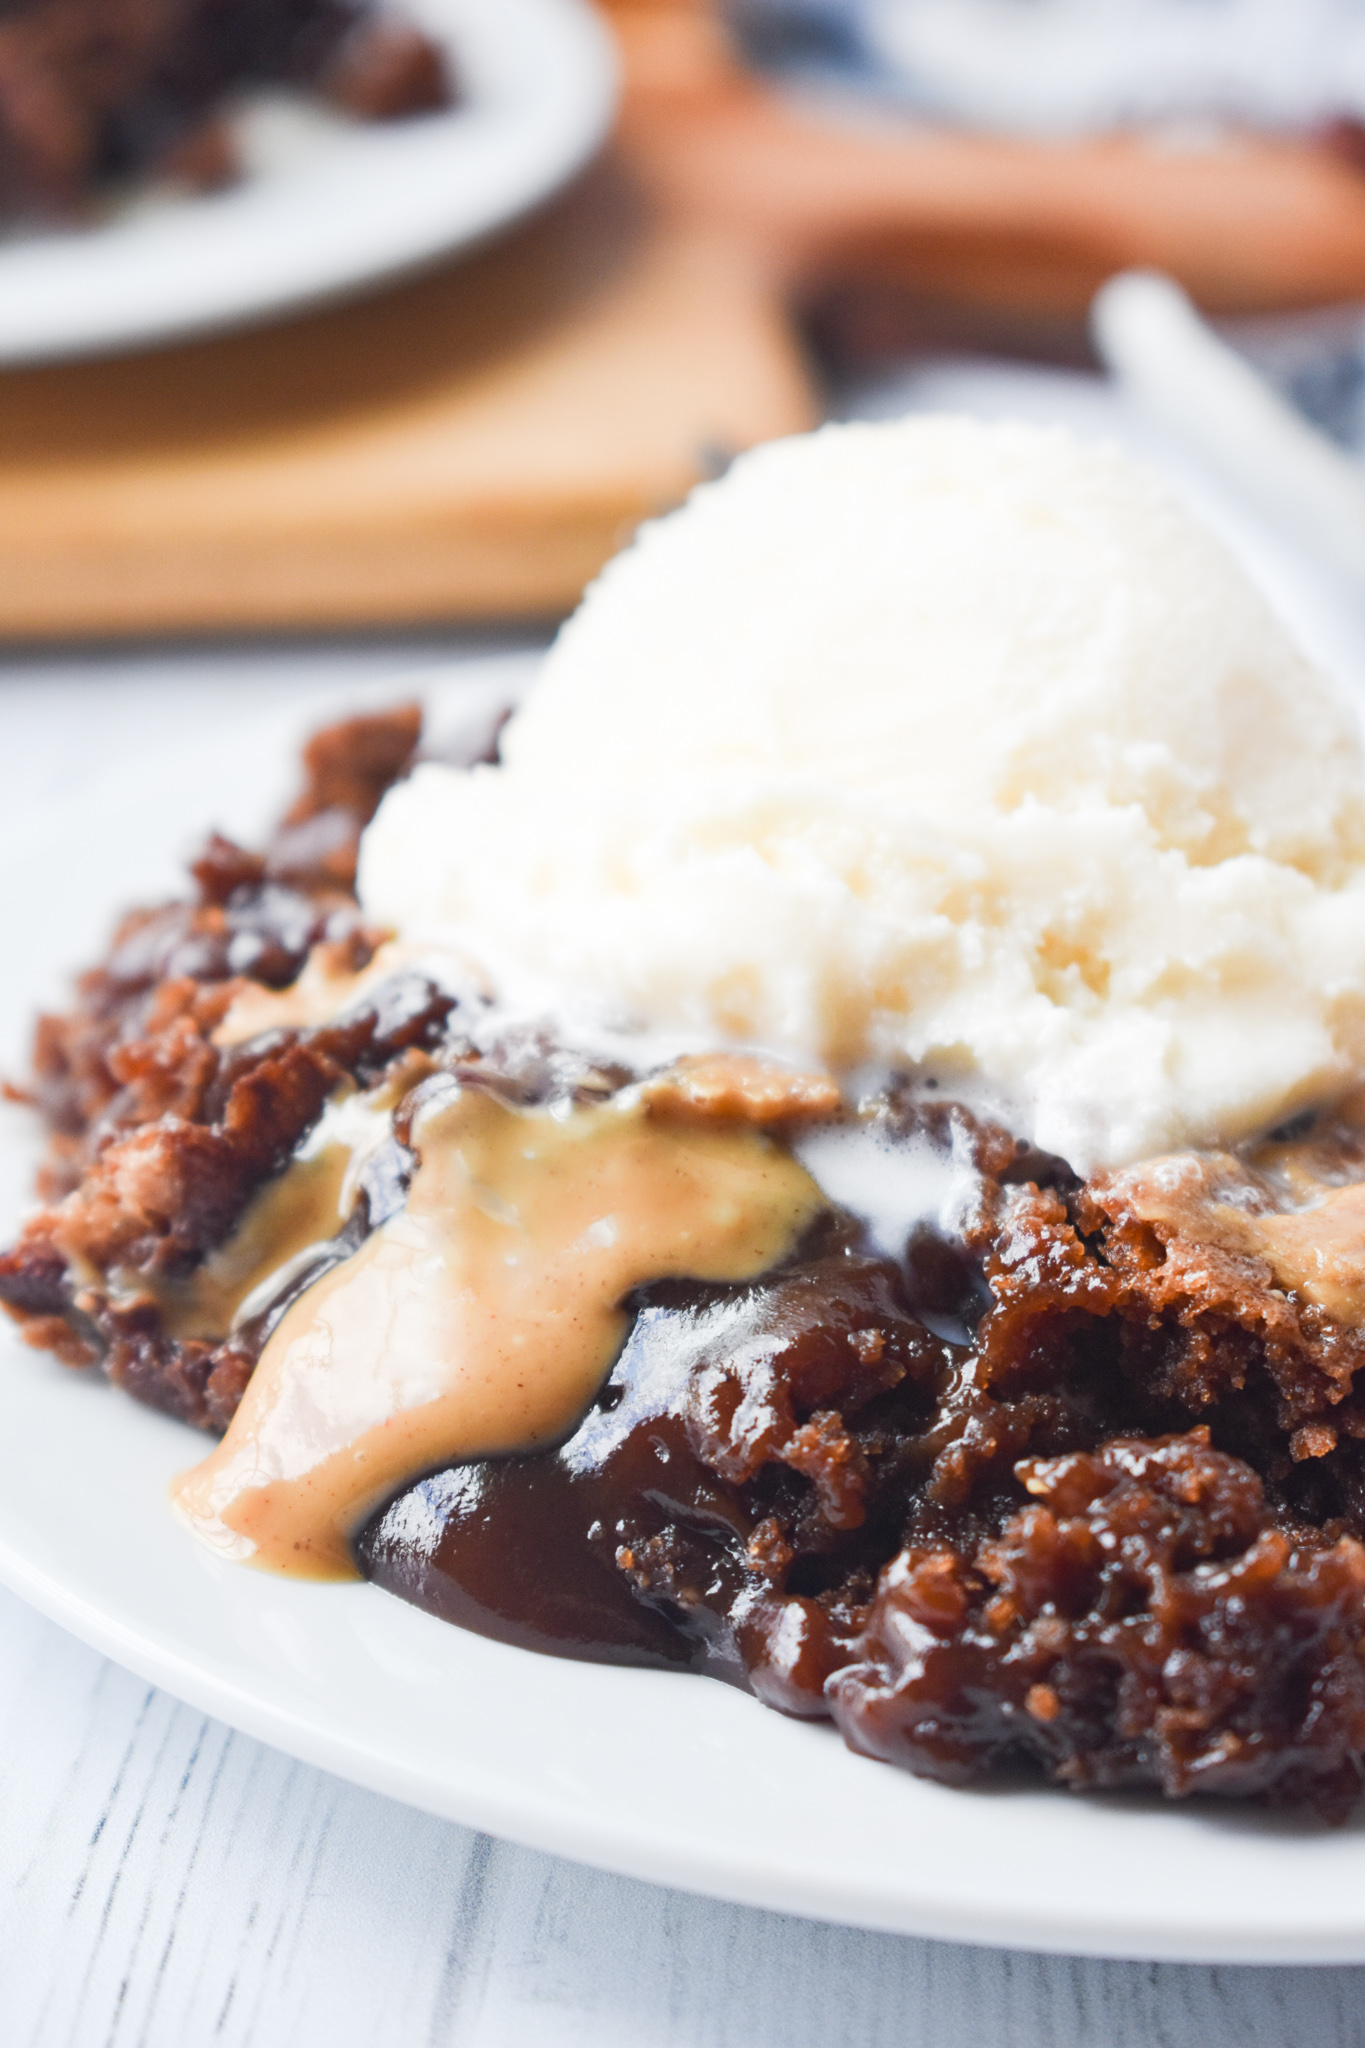 Chocolate Peanut Butter Cobbler by Dance Around The Kitchen - Weekend Potluck 442